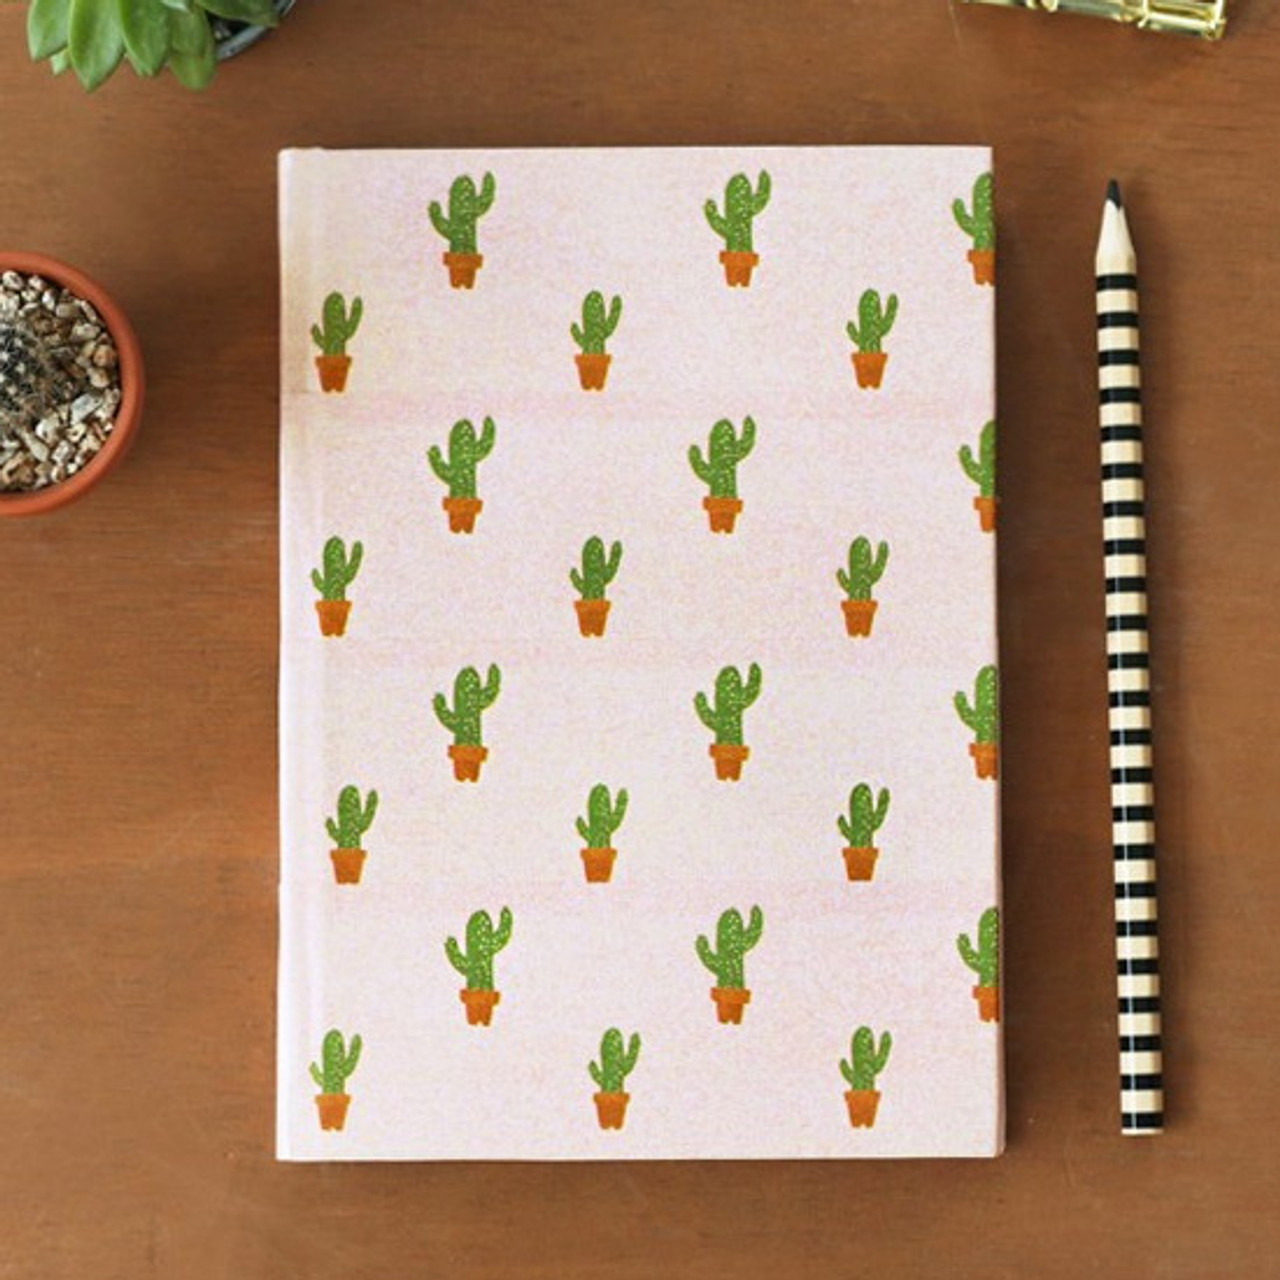 Iconic 1 96 Quot X11yd Pattern Adhesive Reform Tape Cactus